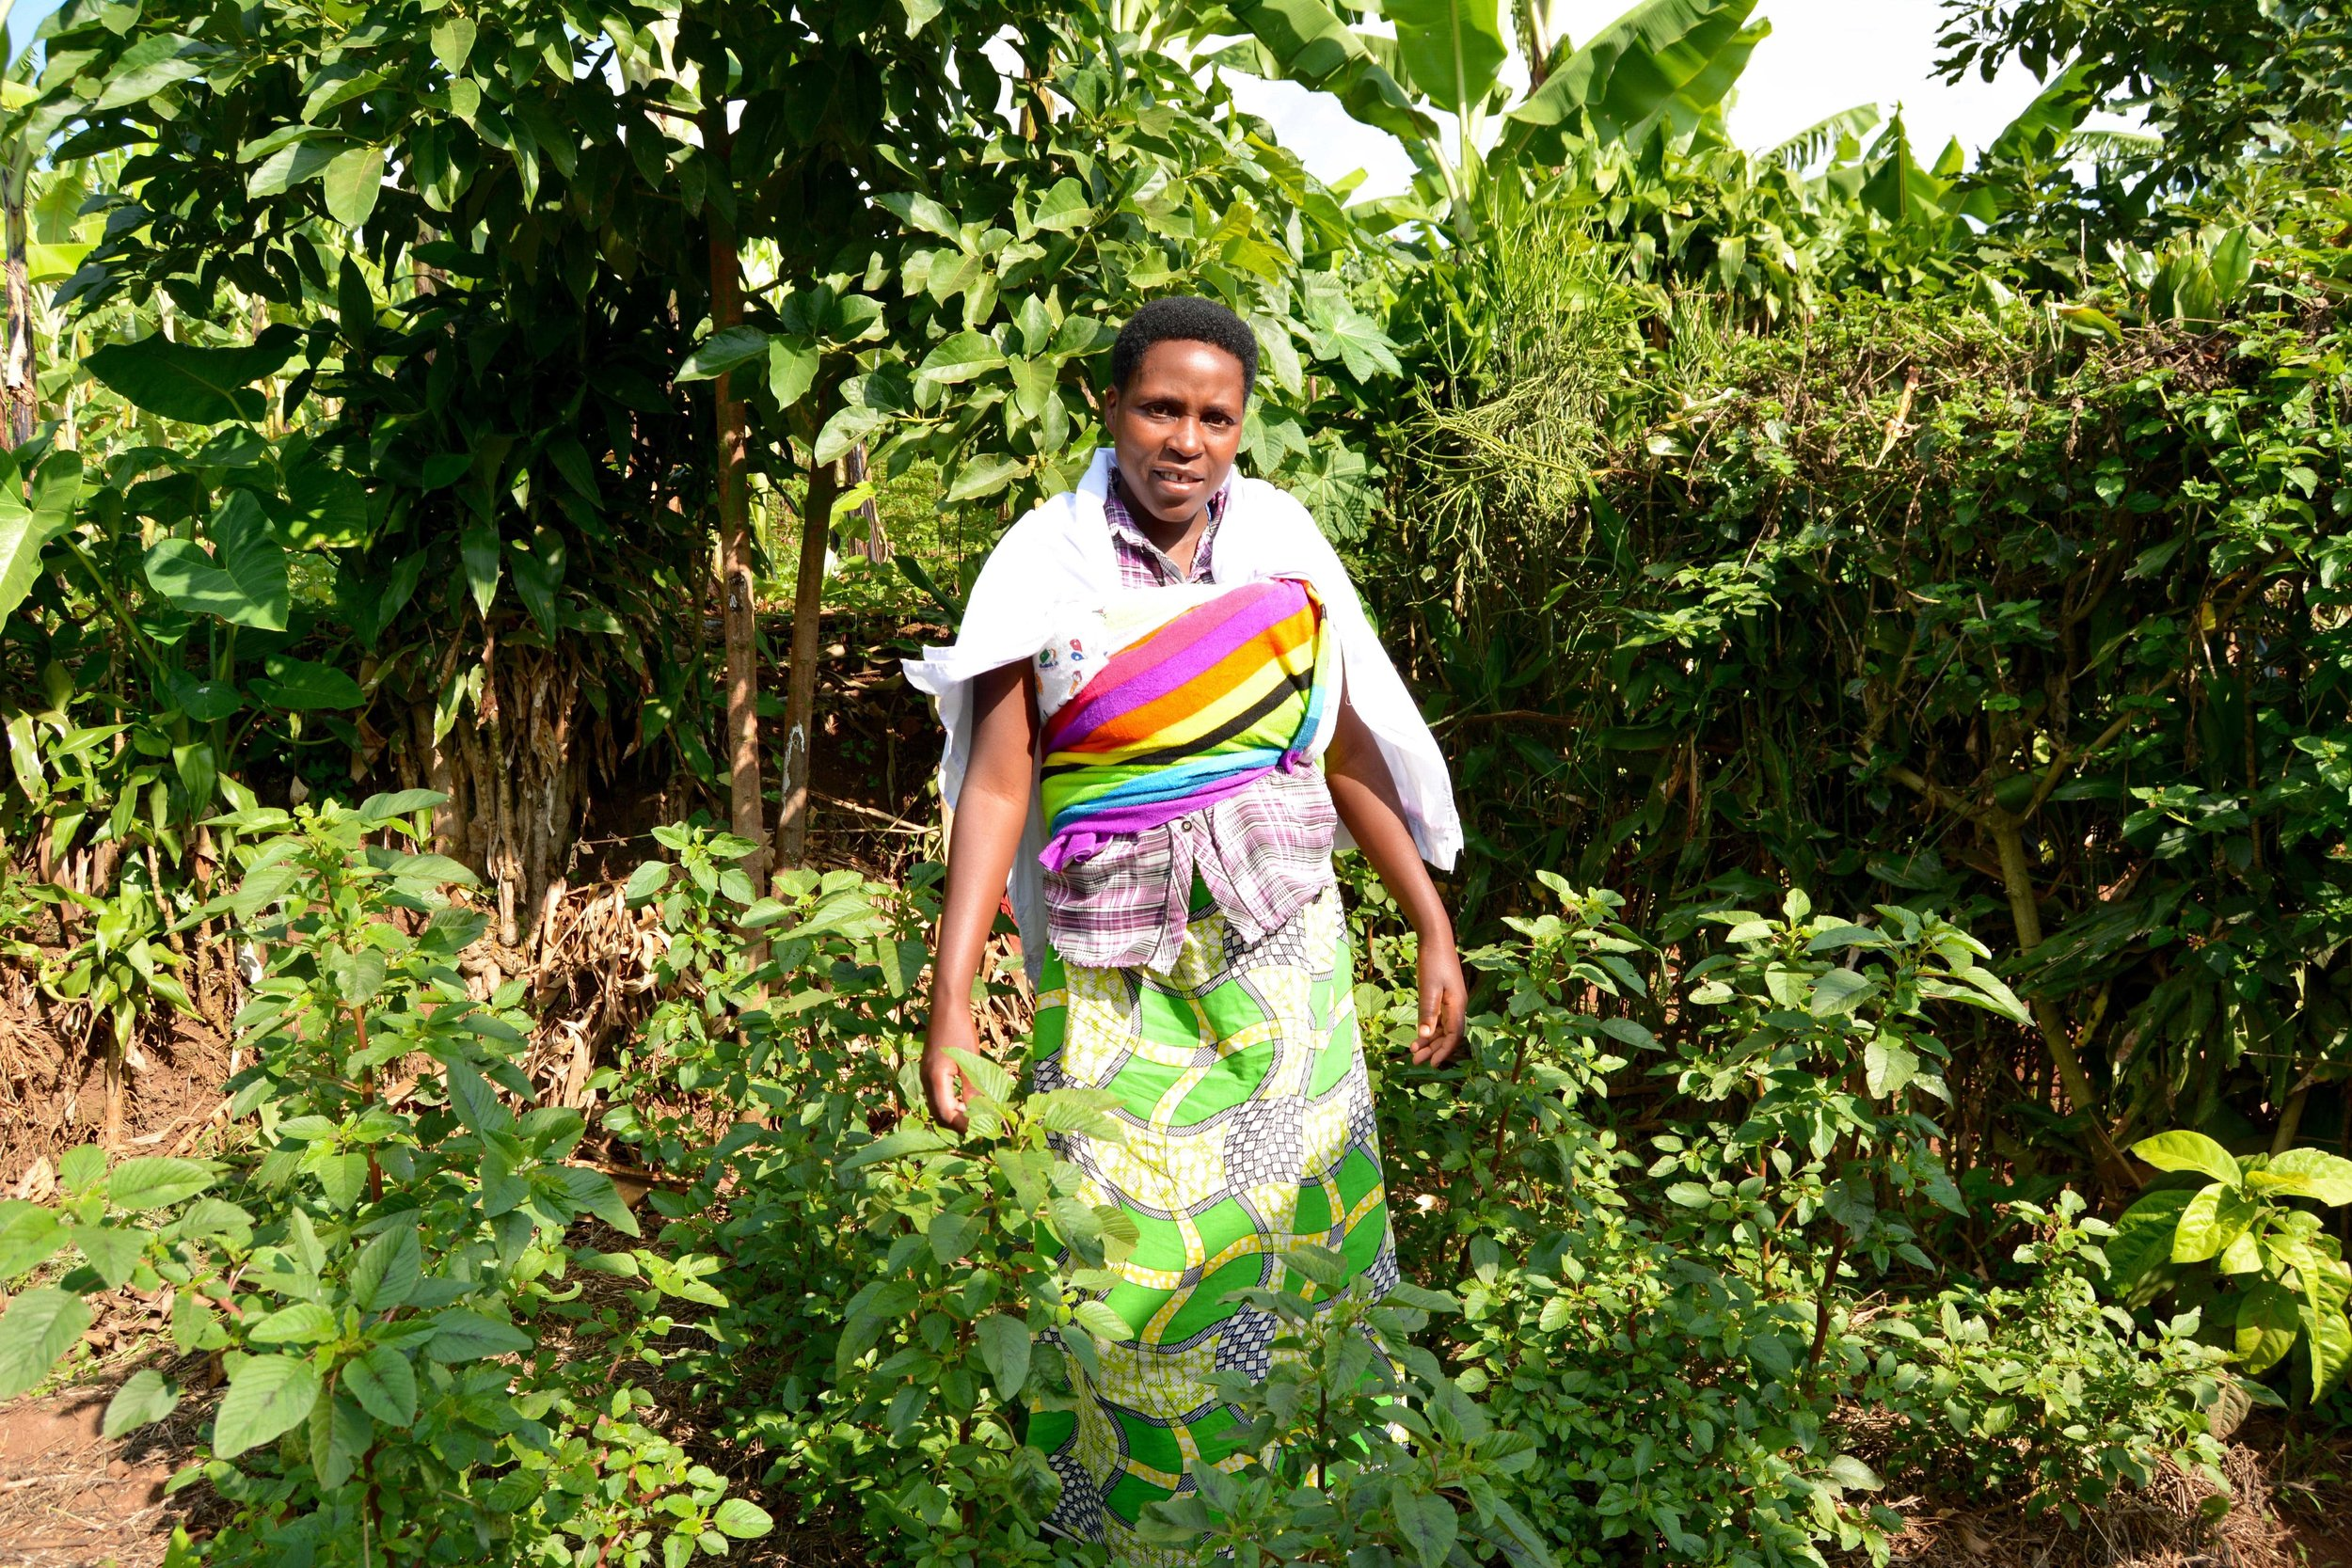 Claudine shows off her flourishing home garden full of Amaranth.